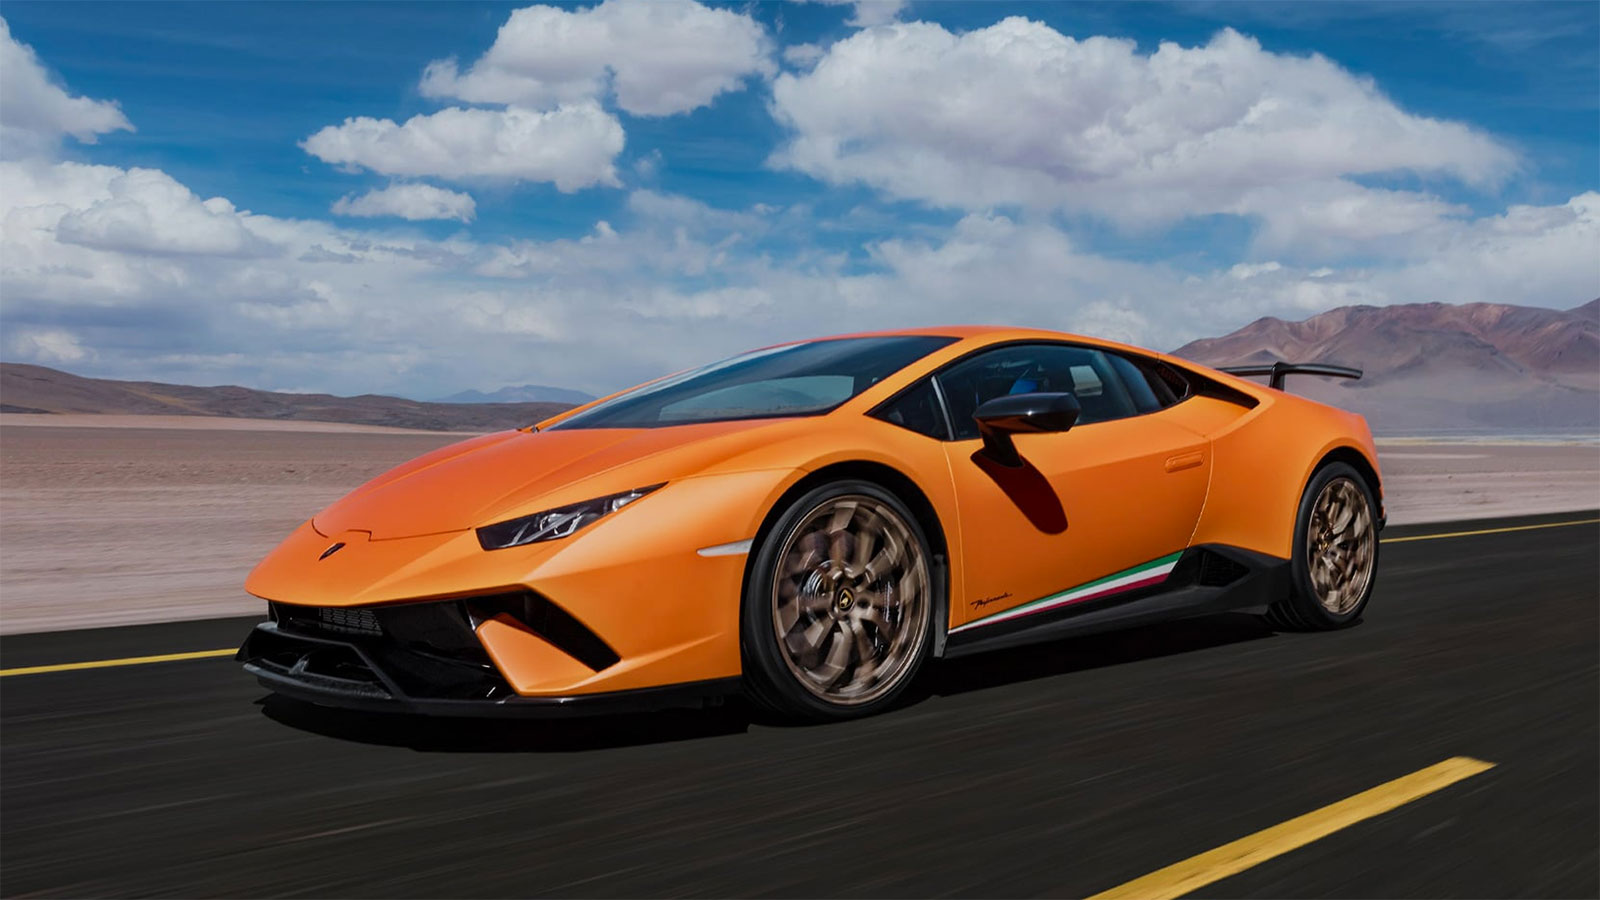 Lamborghini Huracan Performante - Raging Technology image 1